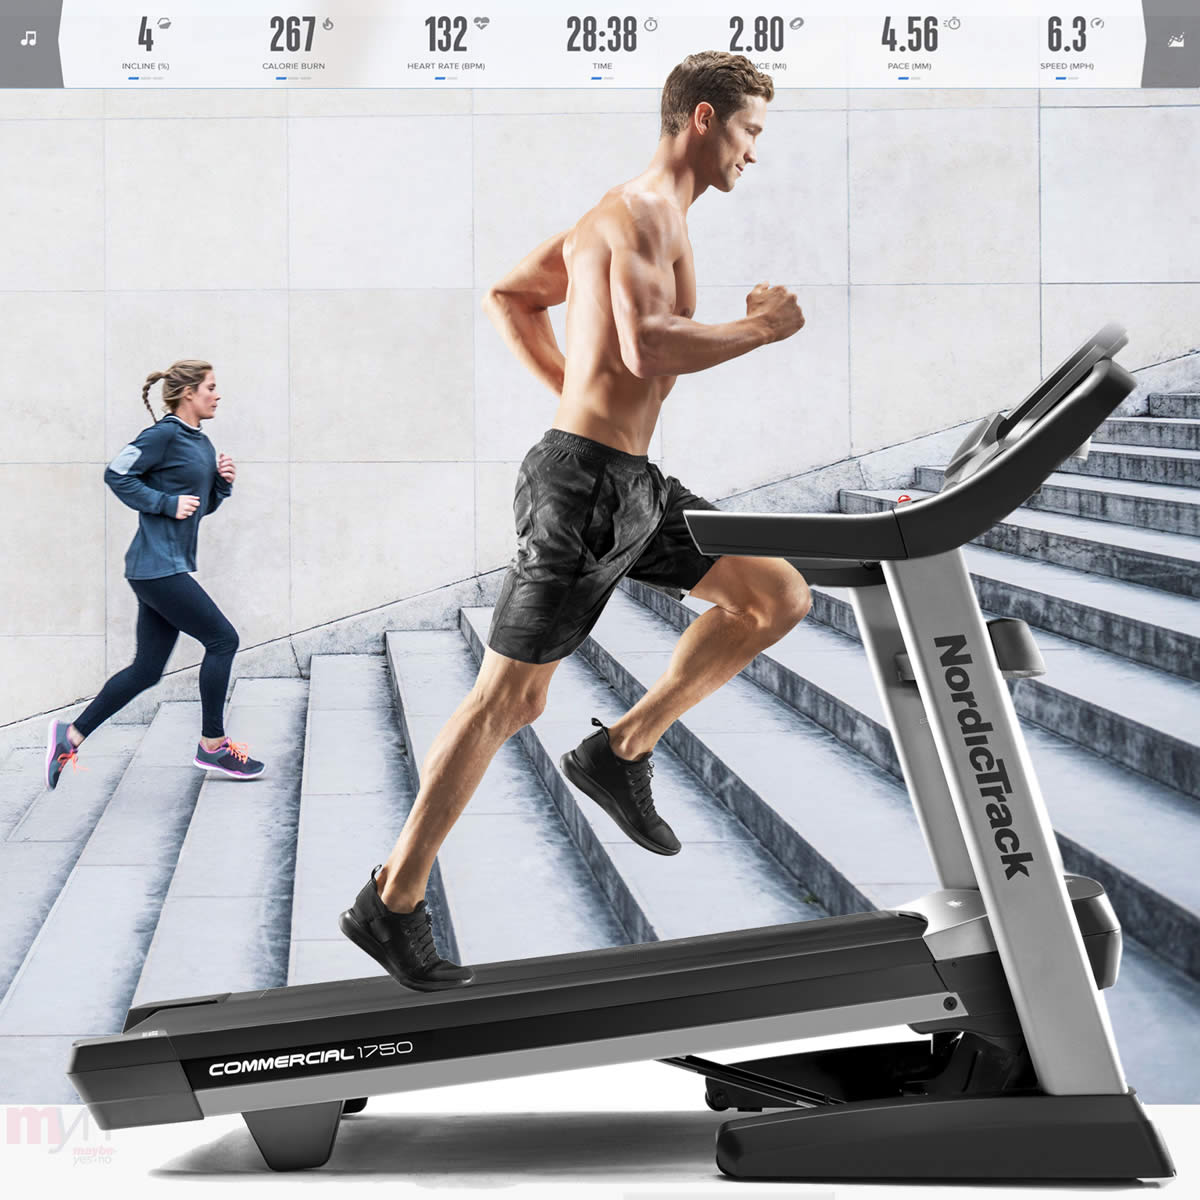 Get the Power of the Incline  with the  Commercial 1750 treadmill . The 15% incline and -3% decline will challenge you and allow you to burn more calories to meets your fitness or weight loss goals quicker